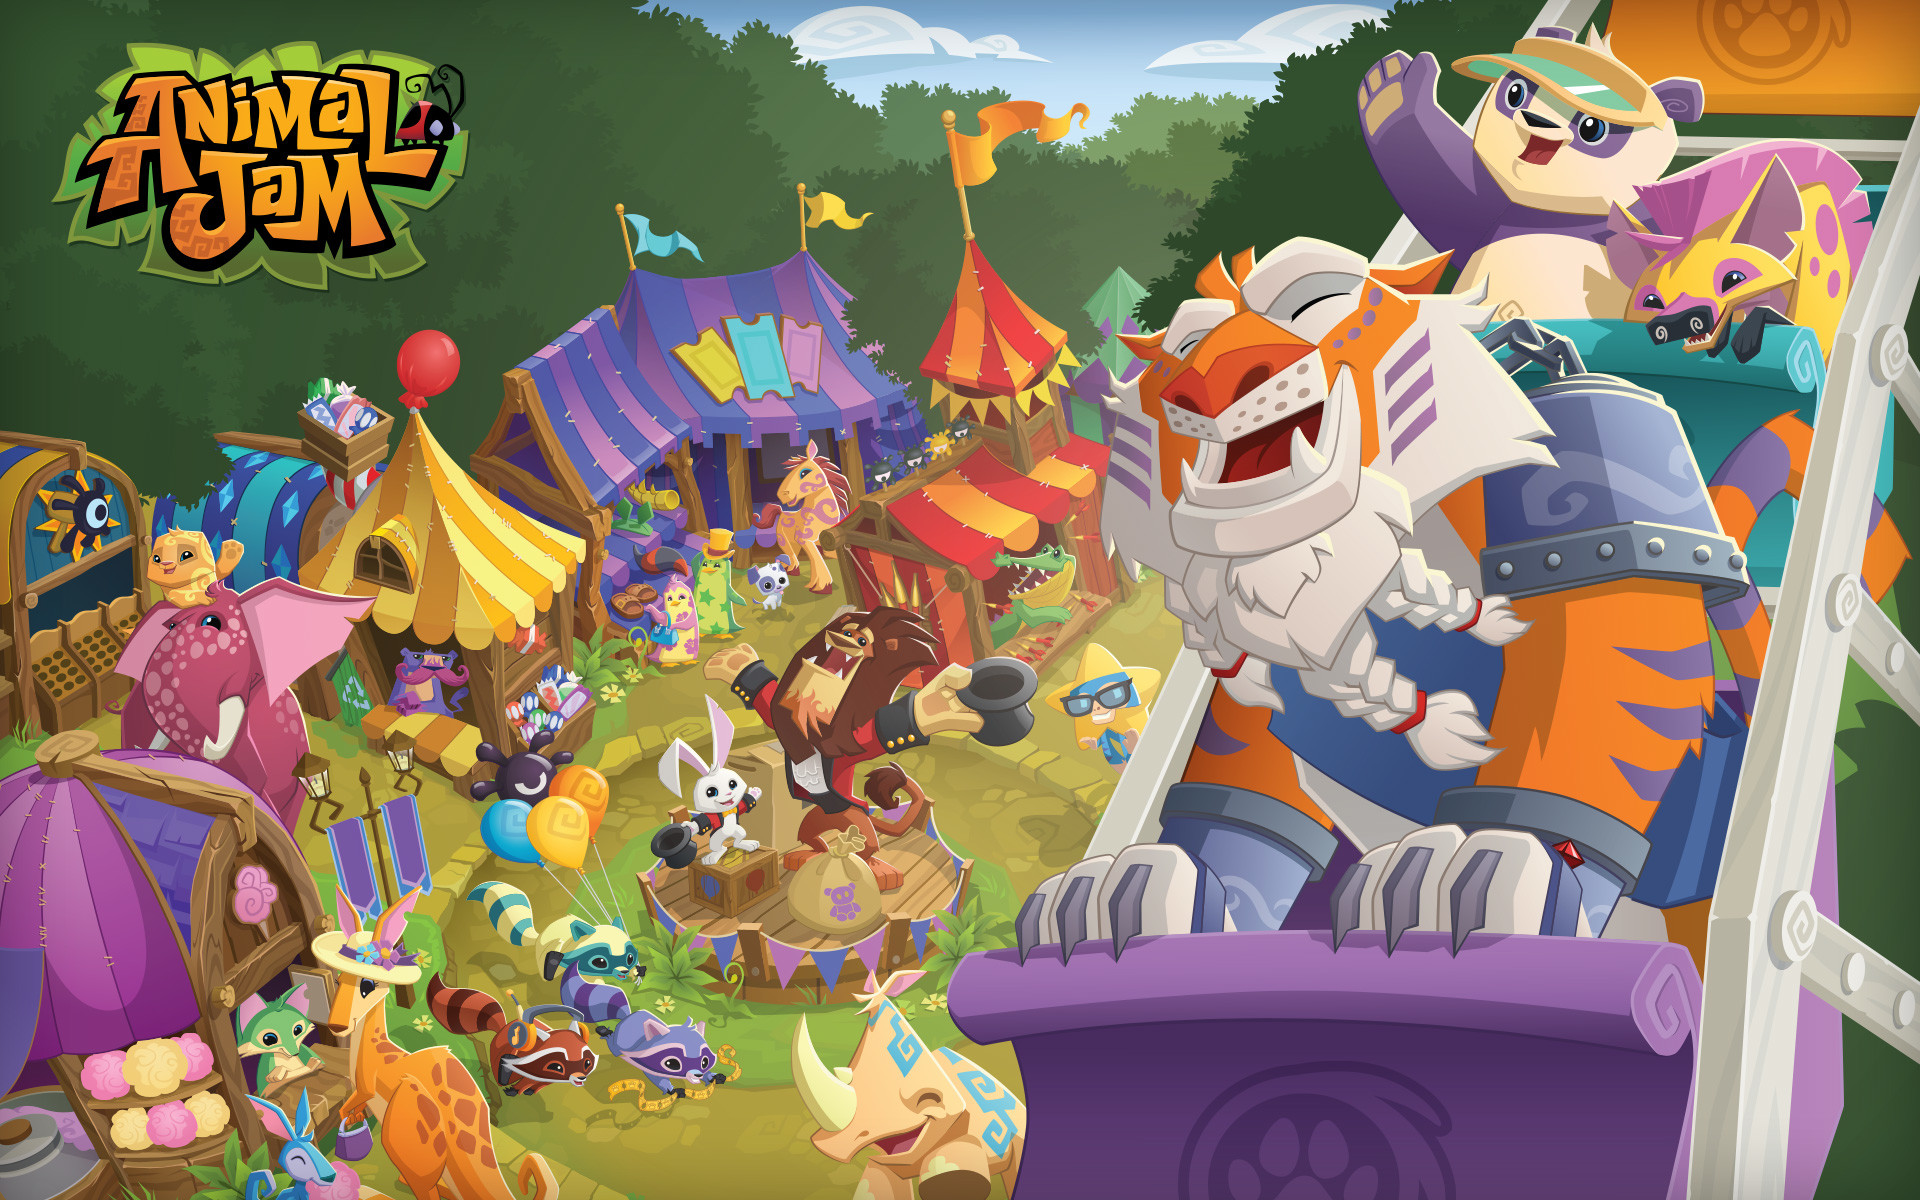 ANIMAL JAM | These neat wallpapers can be used for Bloger banners,  backgrounds .